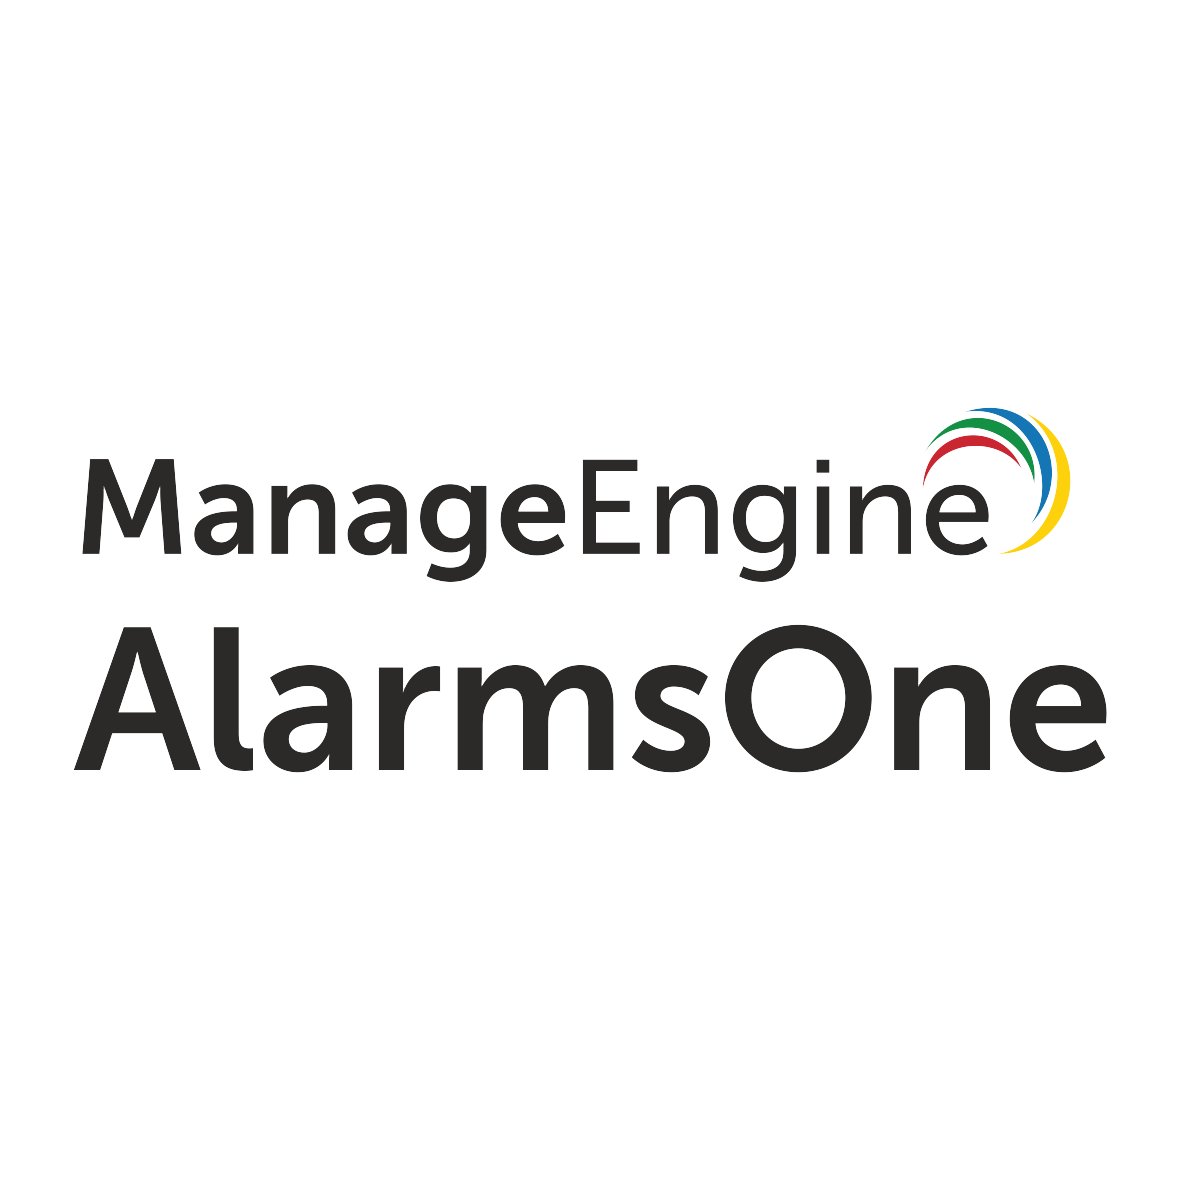 ManageEngine AlarmsOne